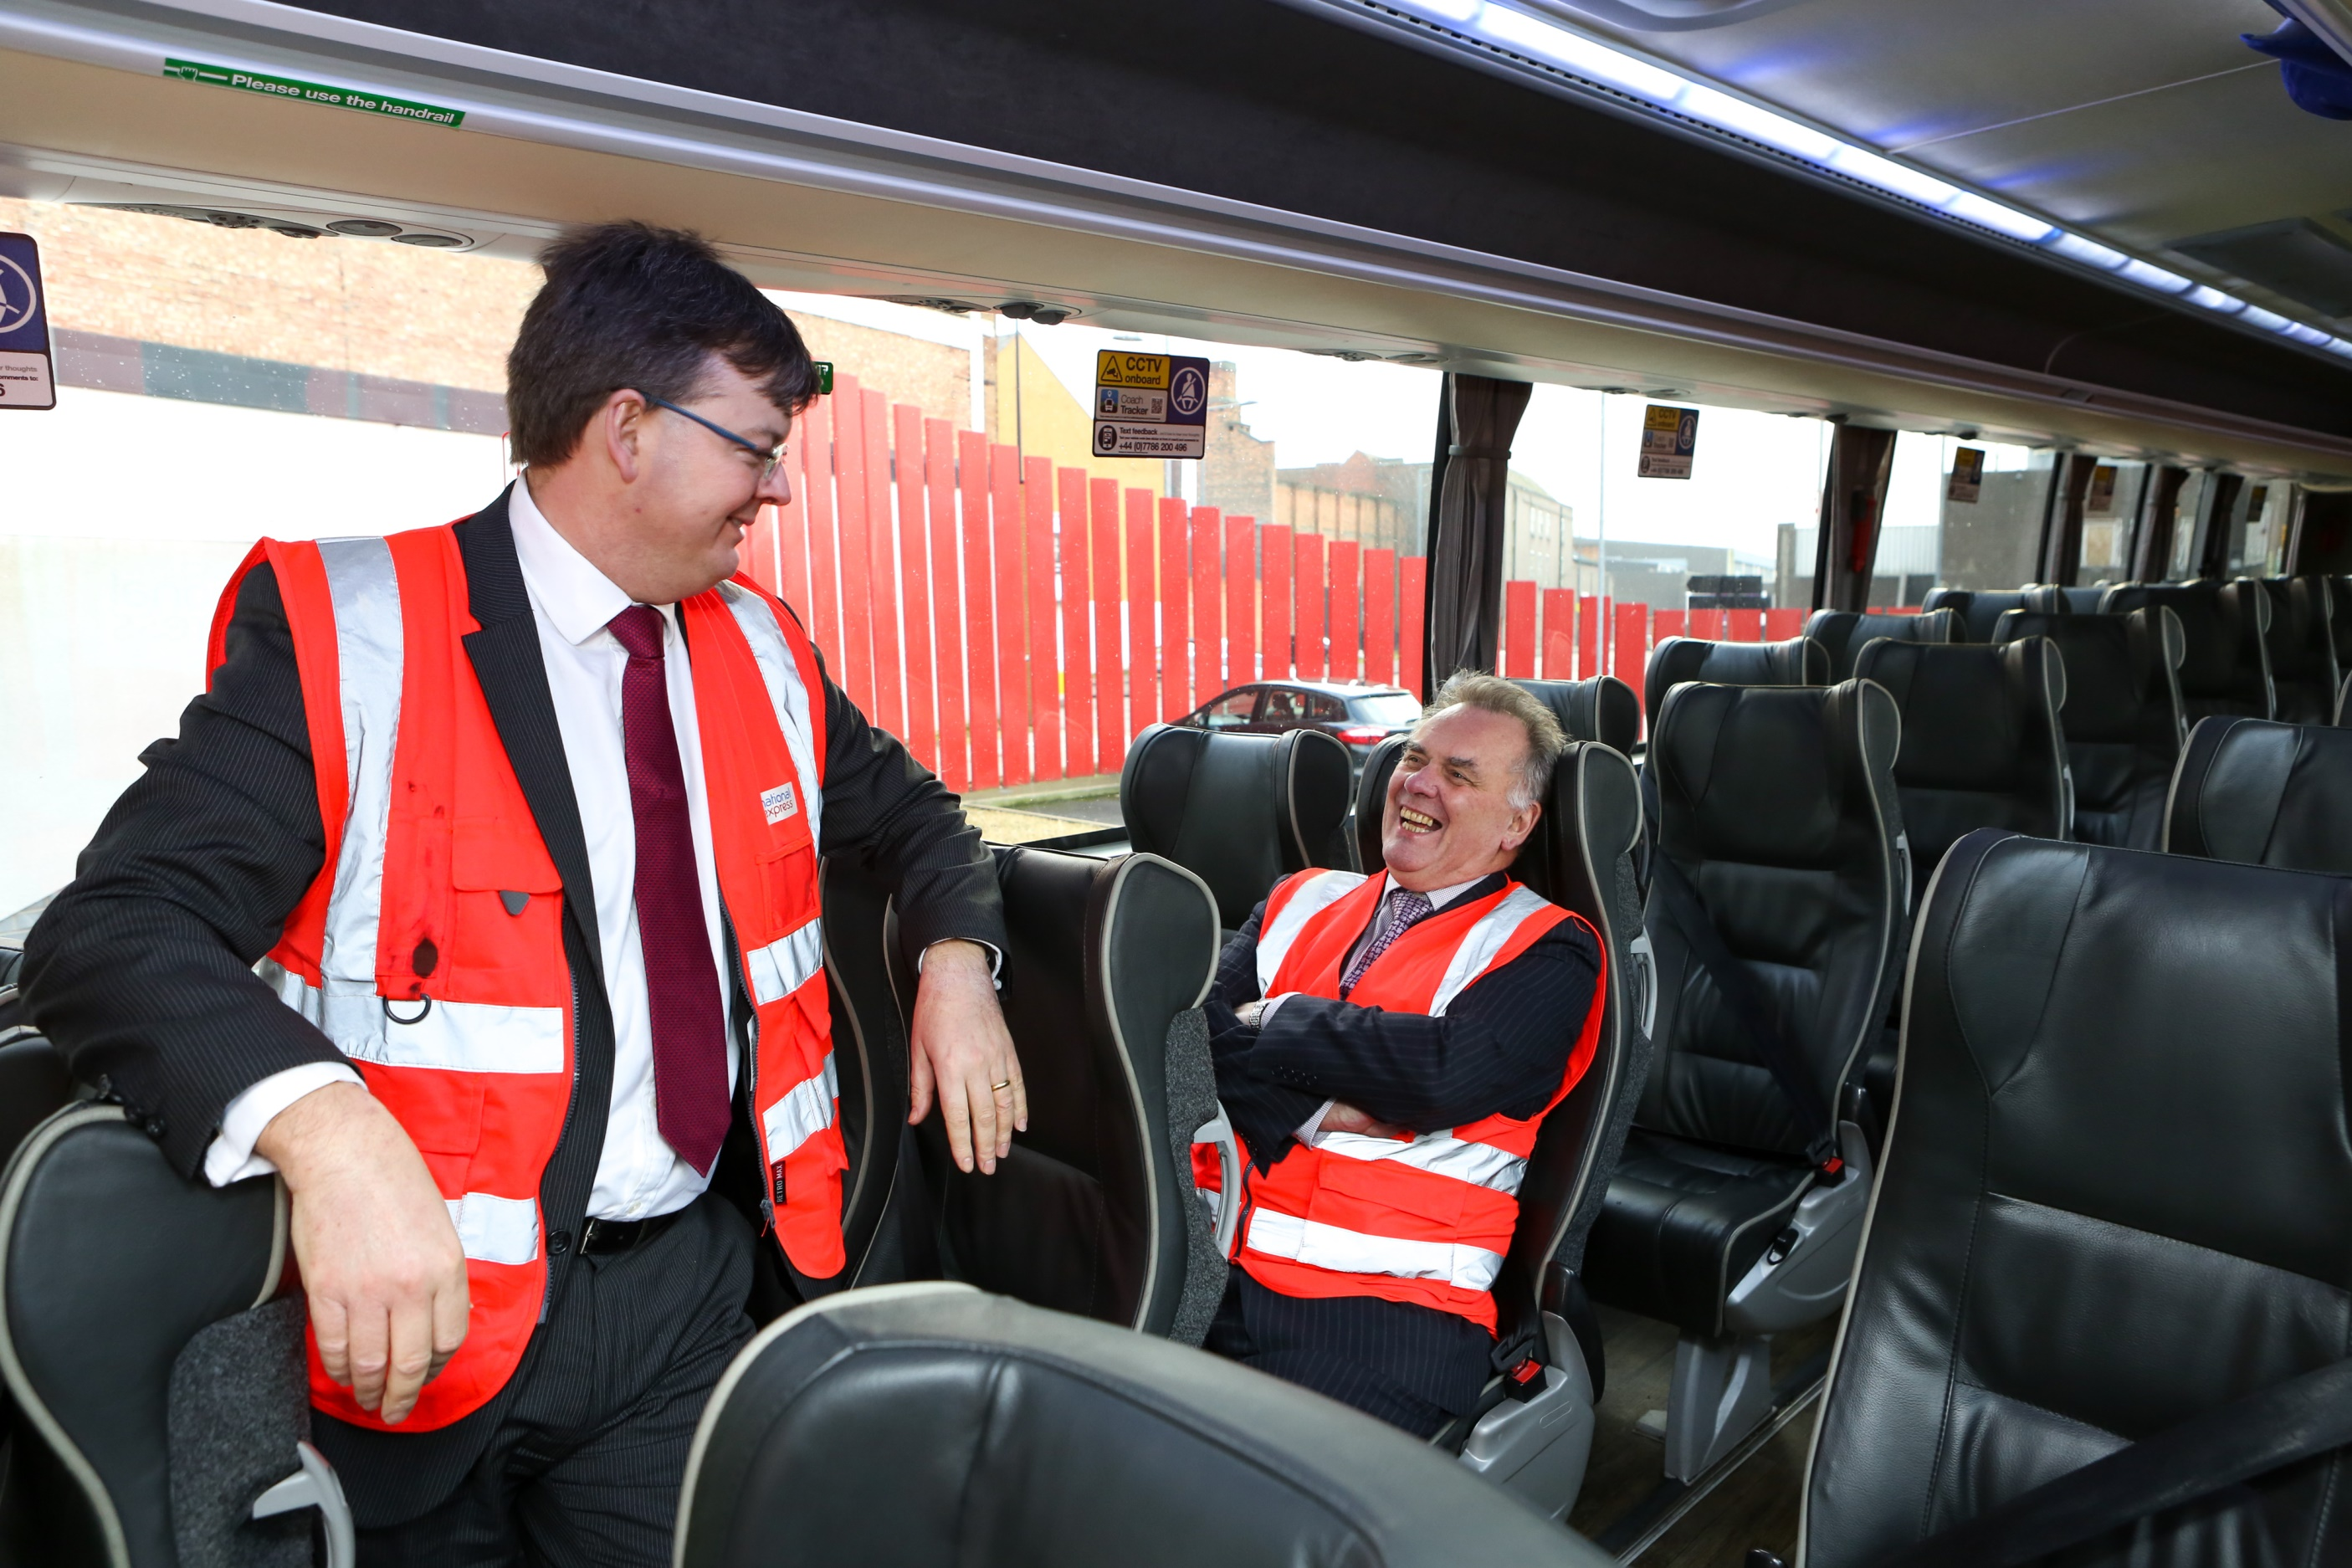 Council leader visits birmingham coach station to mark anniversary national express group plc - National express head office number ...